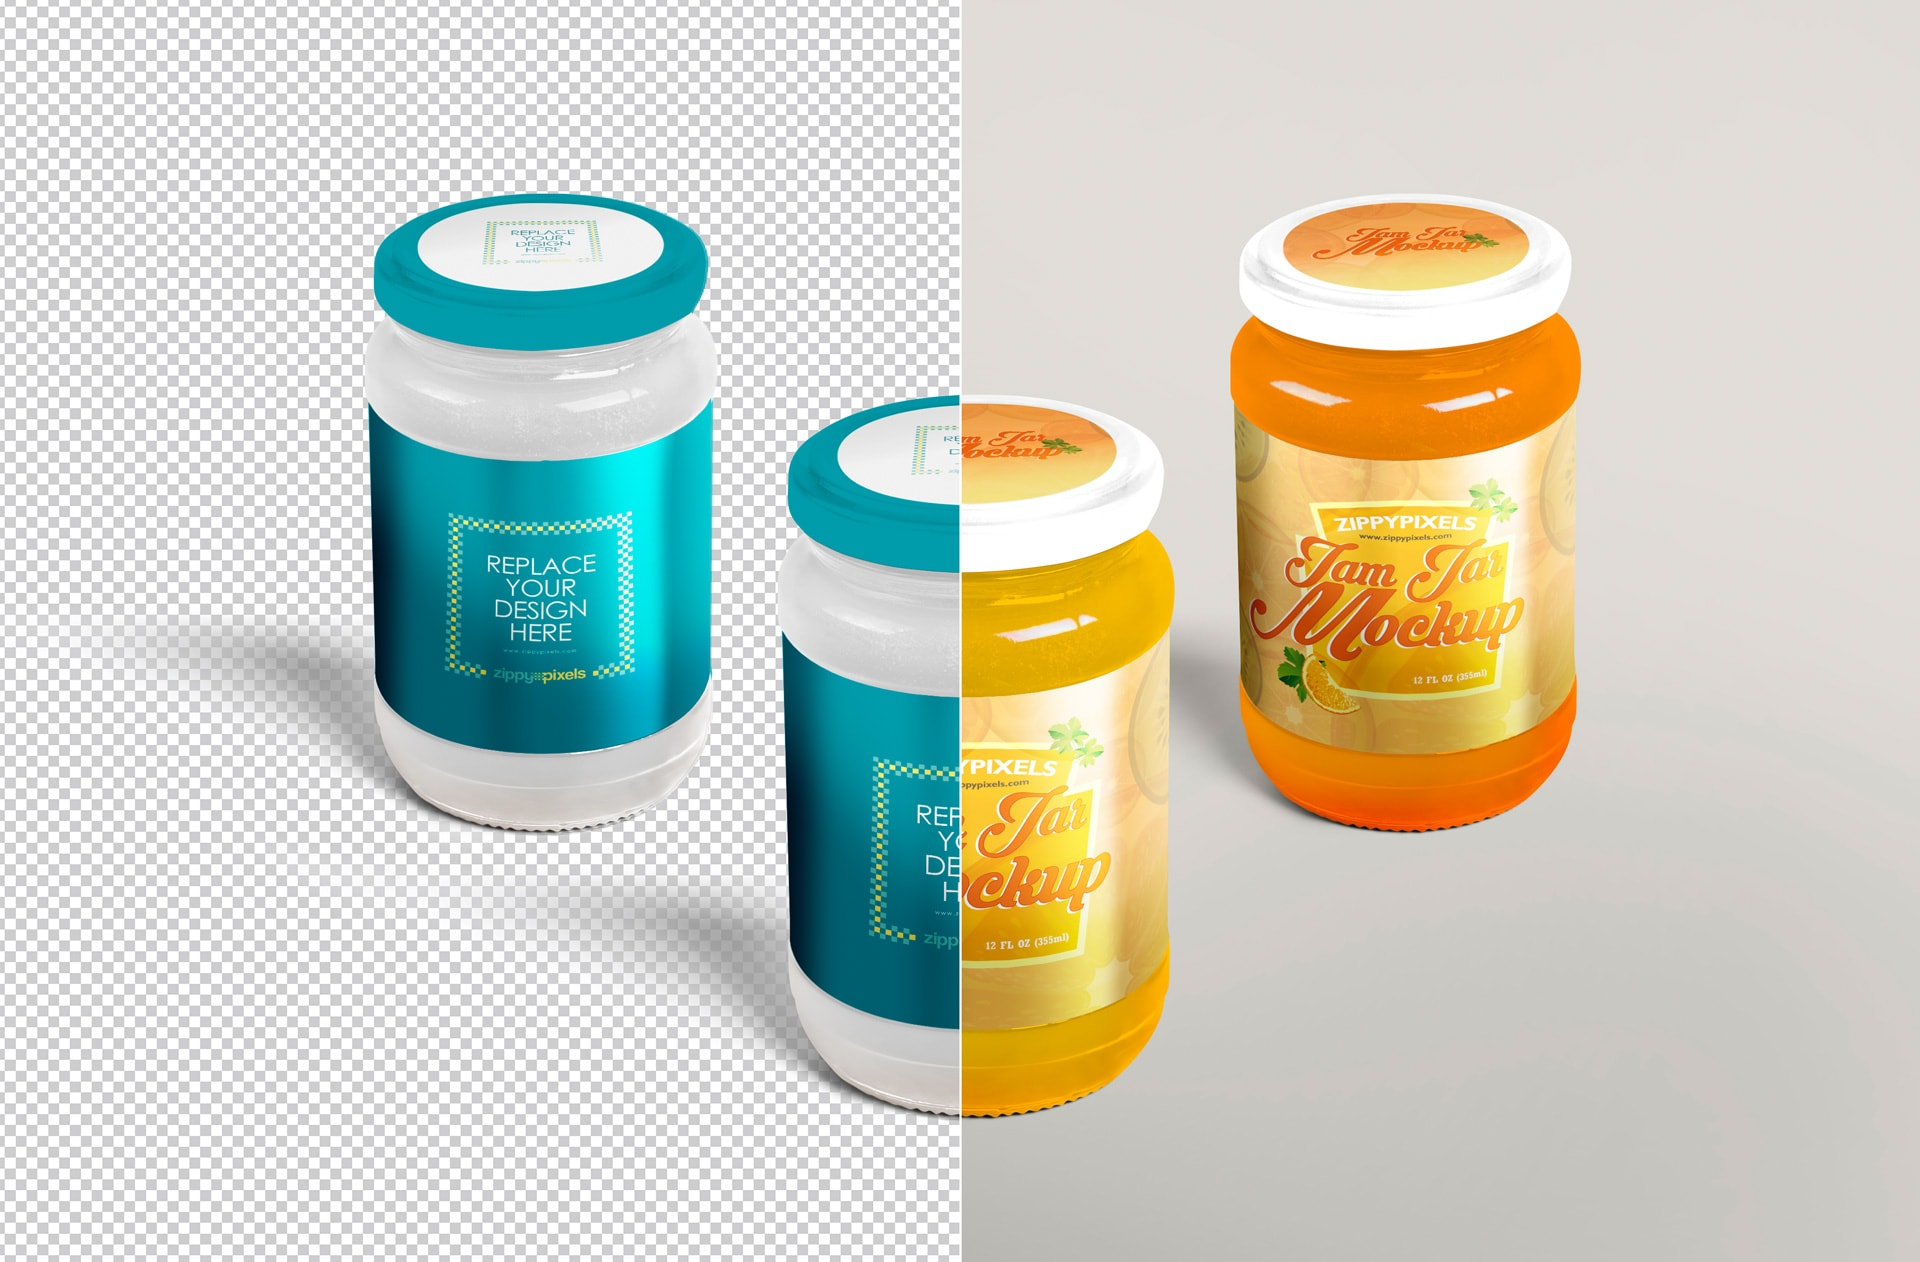 high quality jam jar PSD for your product design presentations